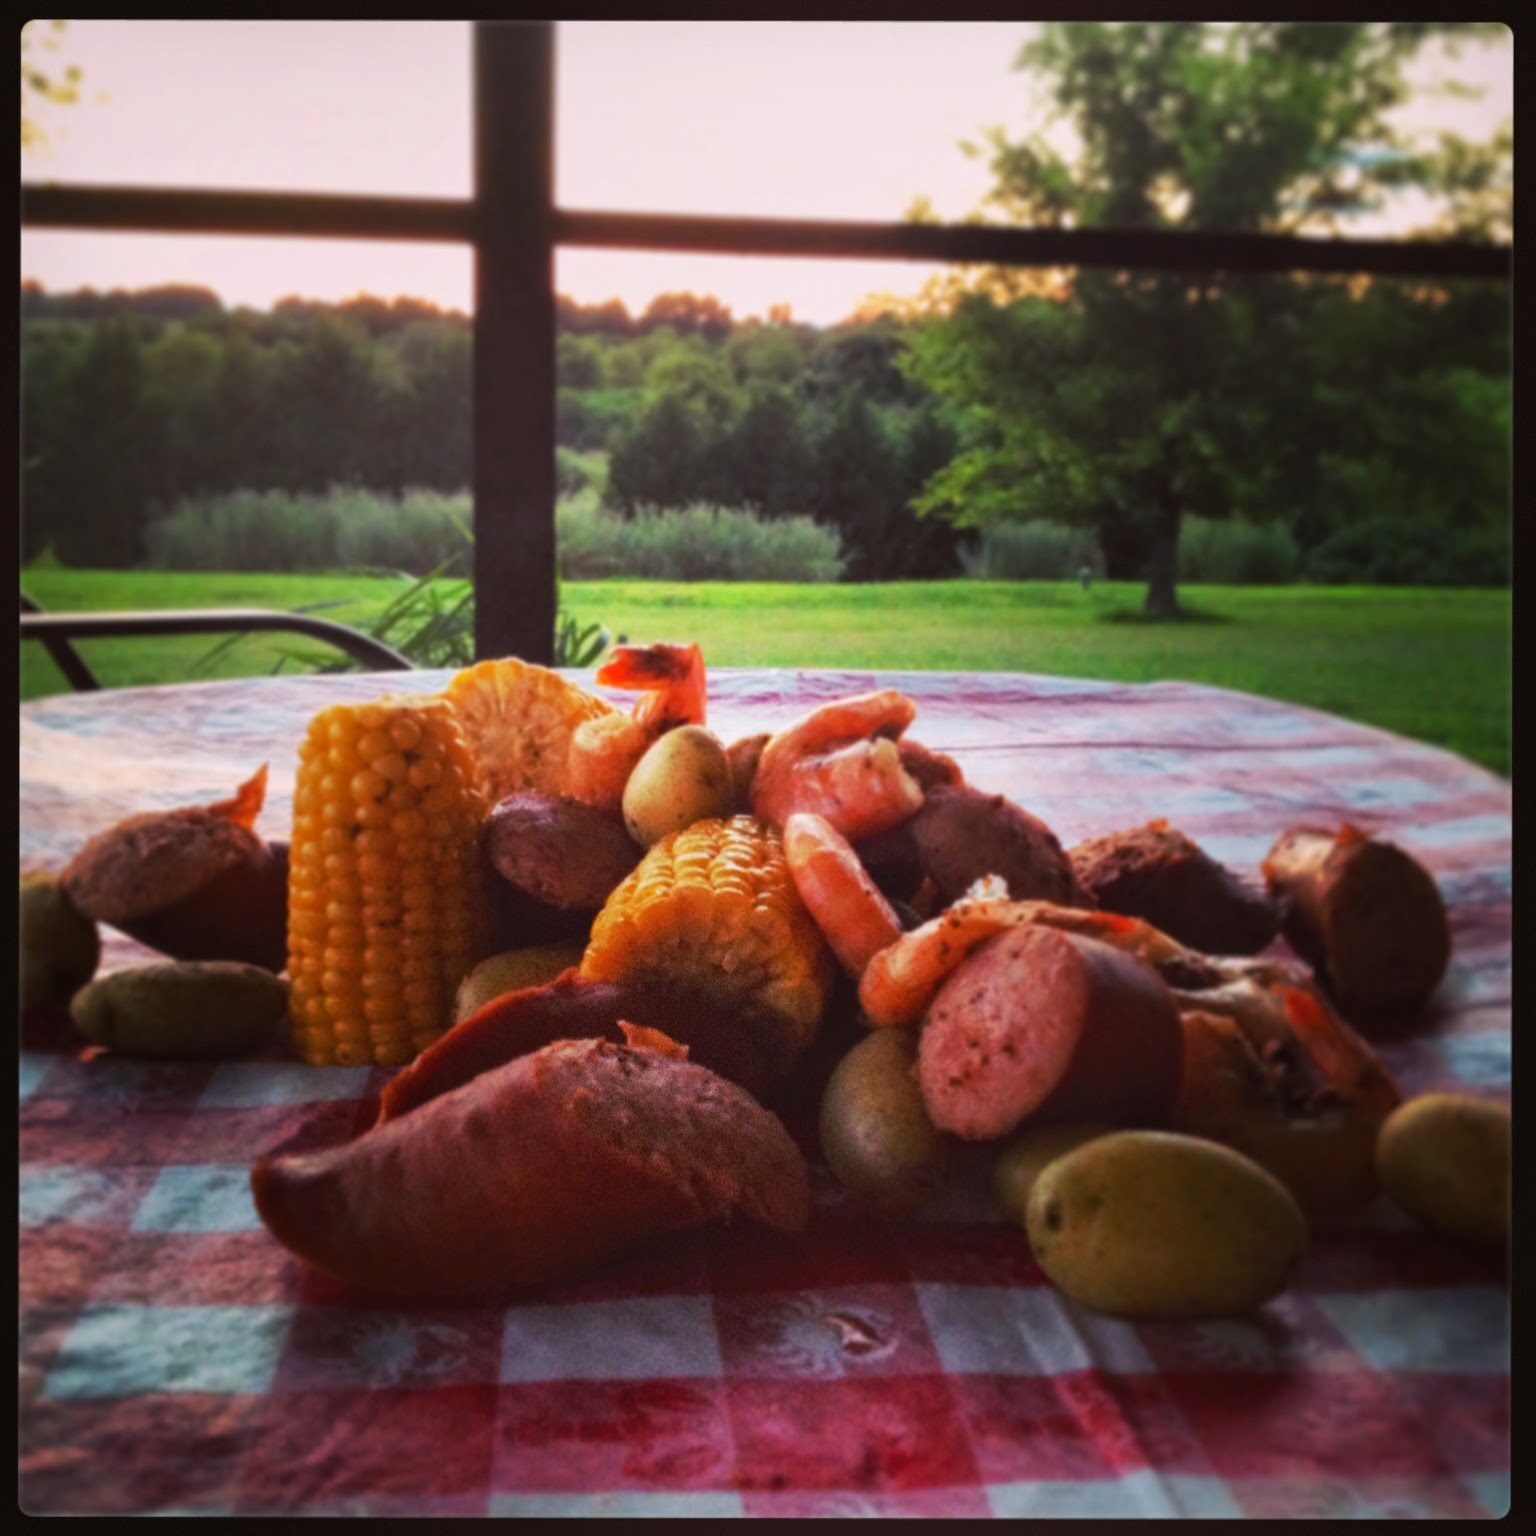 Low Country Boil  Fresh corn * smoked sausage * new potatoes * peel-on shrimp  1/2 C Old Bay * 2T sea salt * 8Q water  Boil water with seasoning.  Add potatoes. Cook 13 min.  Add corn. Cook 5 min.   Add shrimp and sausage, Cook 3-4 min.  Drain. Dump onto paper or plastic tablecloth and dig in!